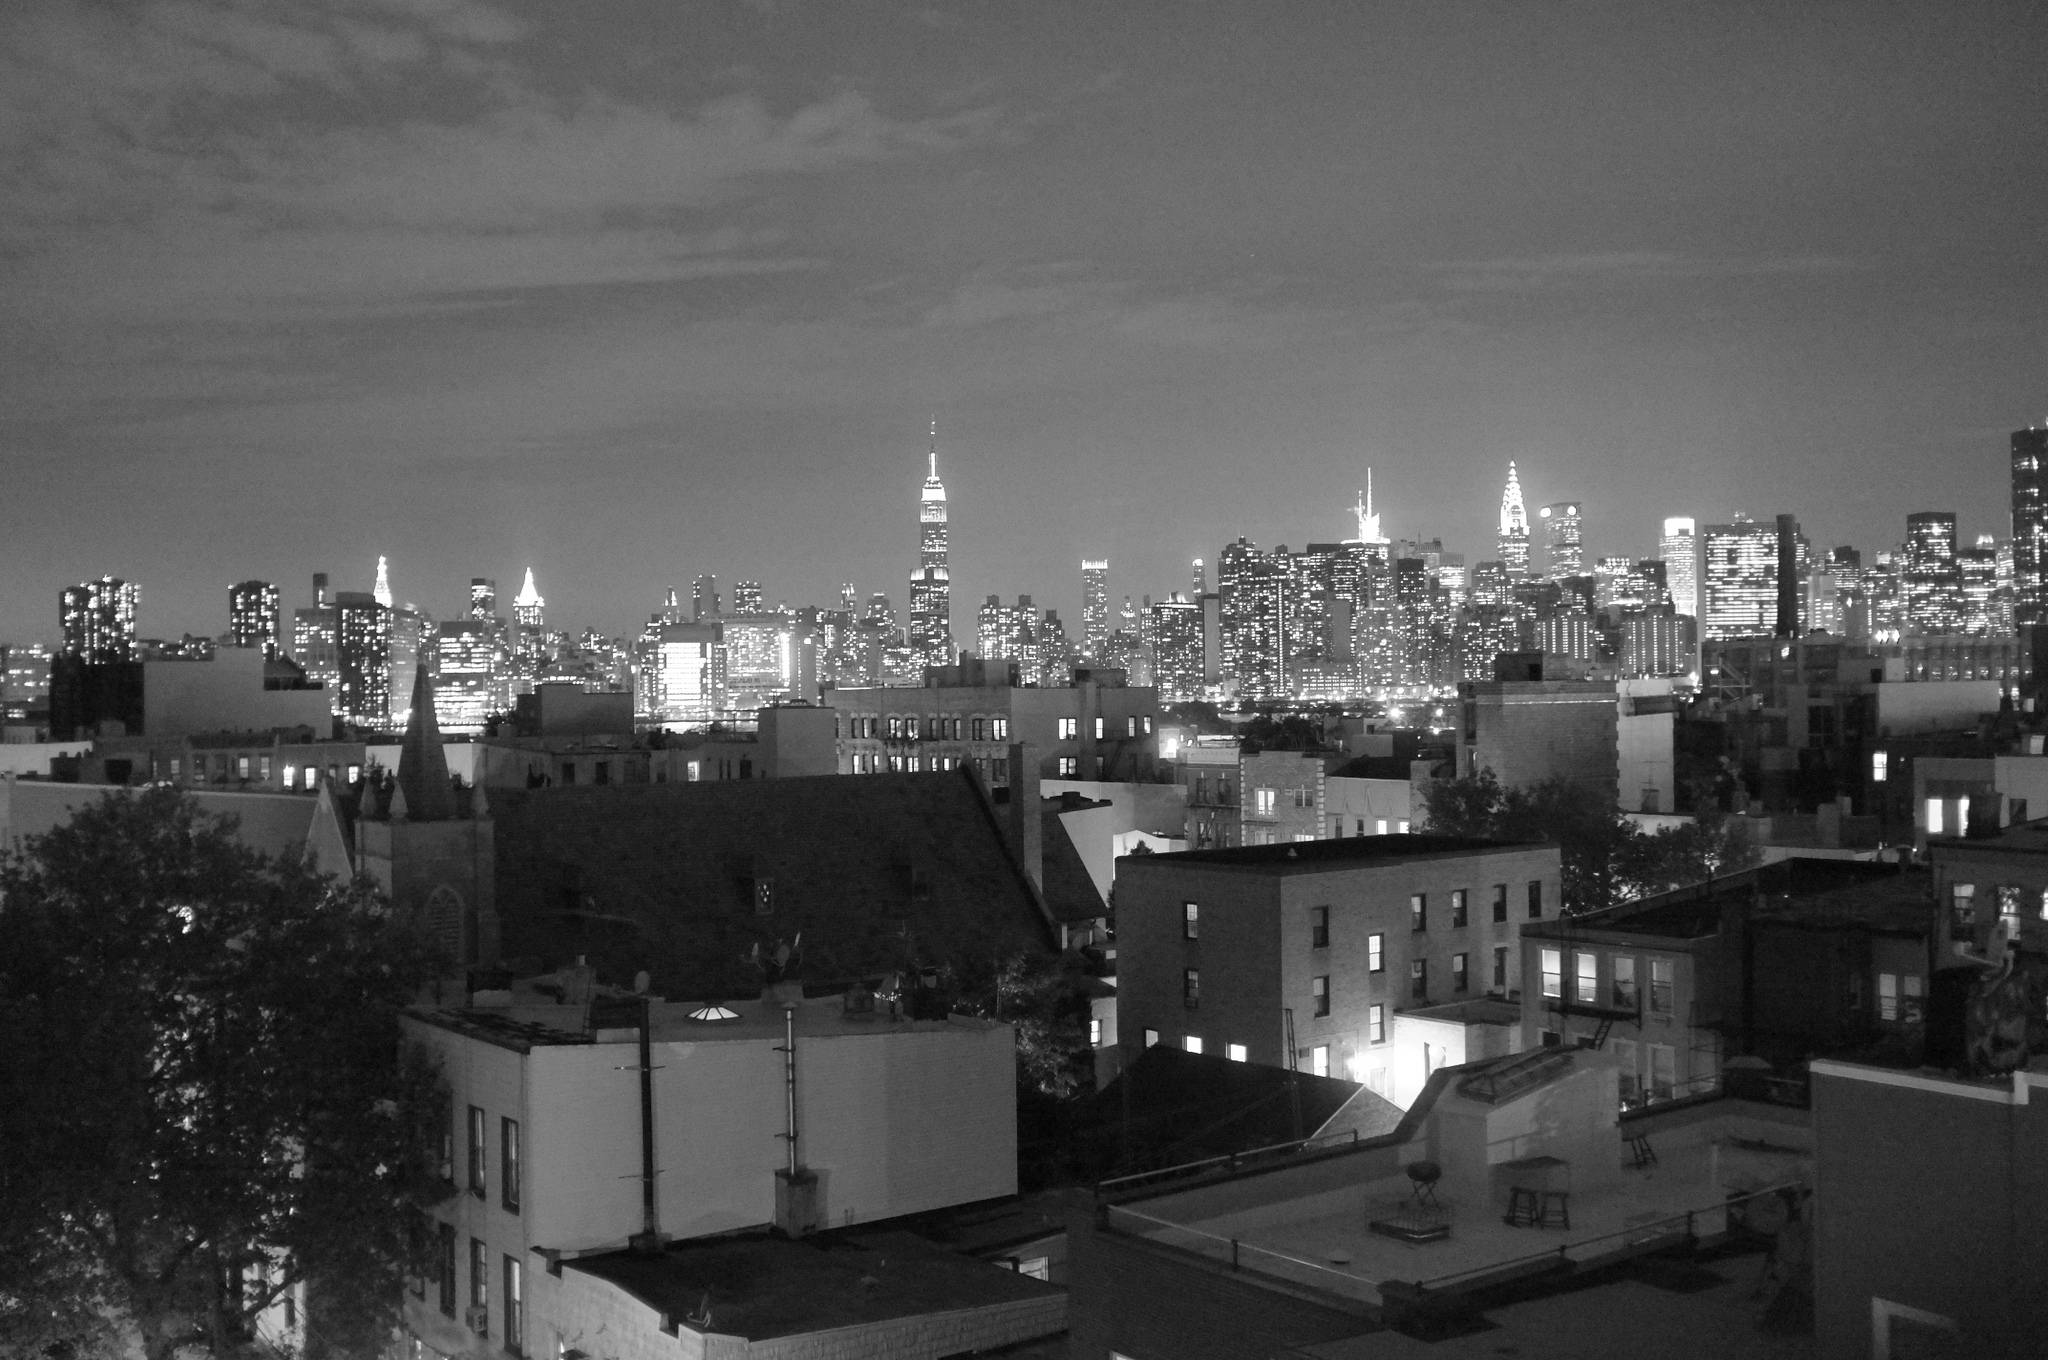 A view of Midtown Manhattan from Greenpoint (via flickr.com/migueloks)